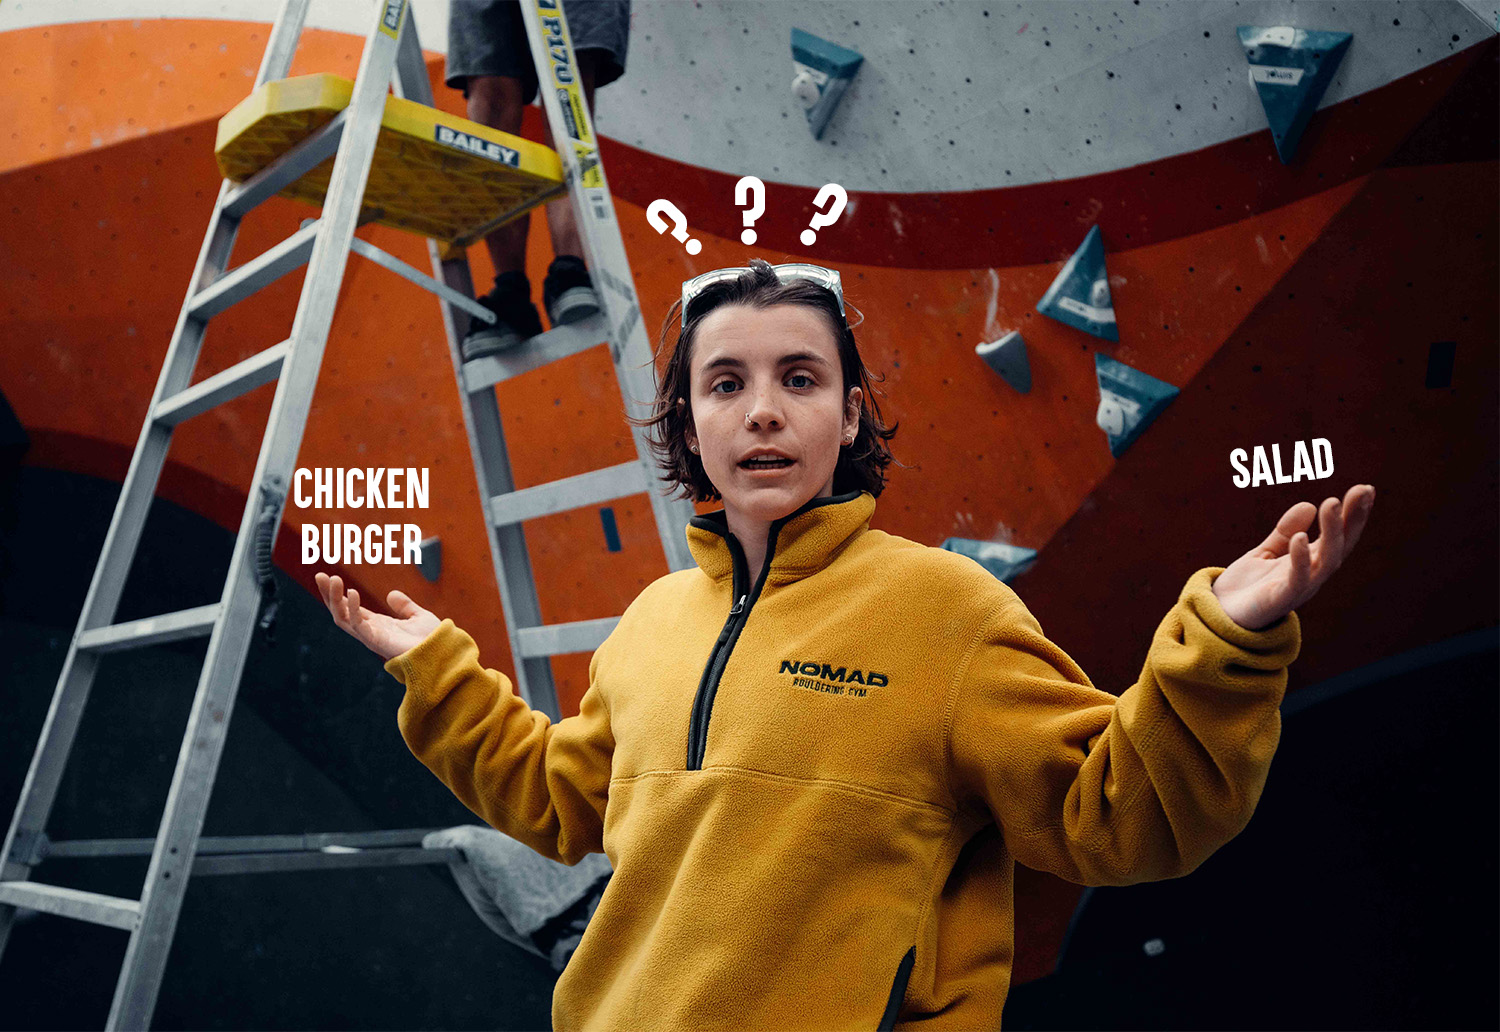 Chicken burger (or tofu) or Greek salad? Why rock climbing nutrition is a game changer.